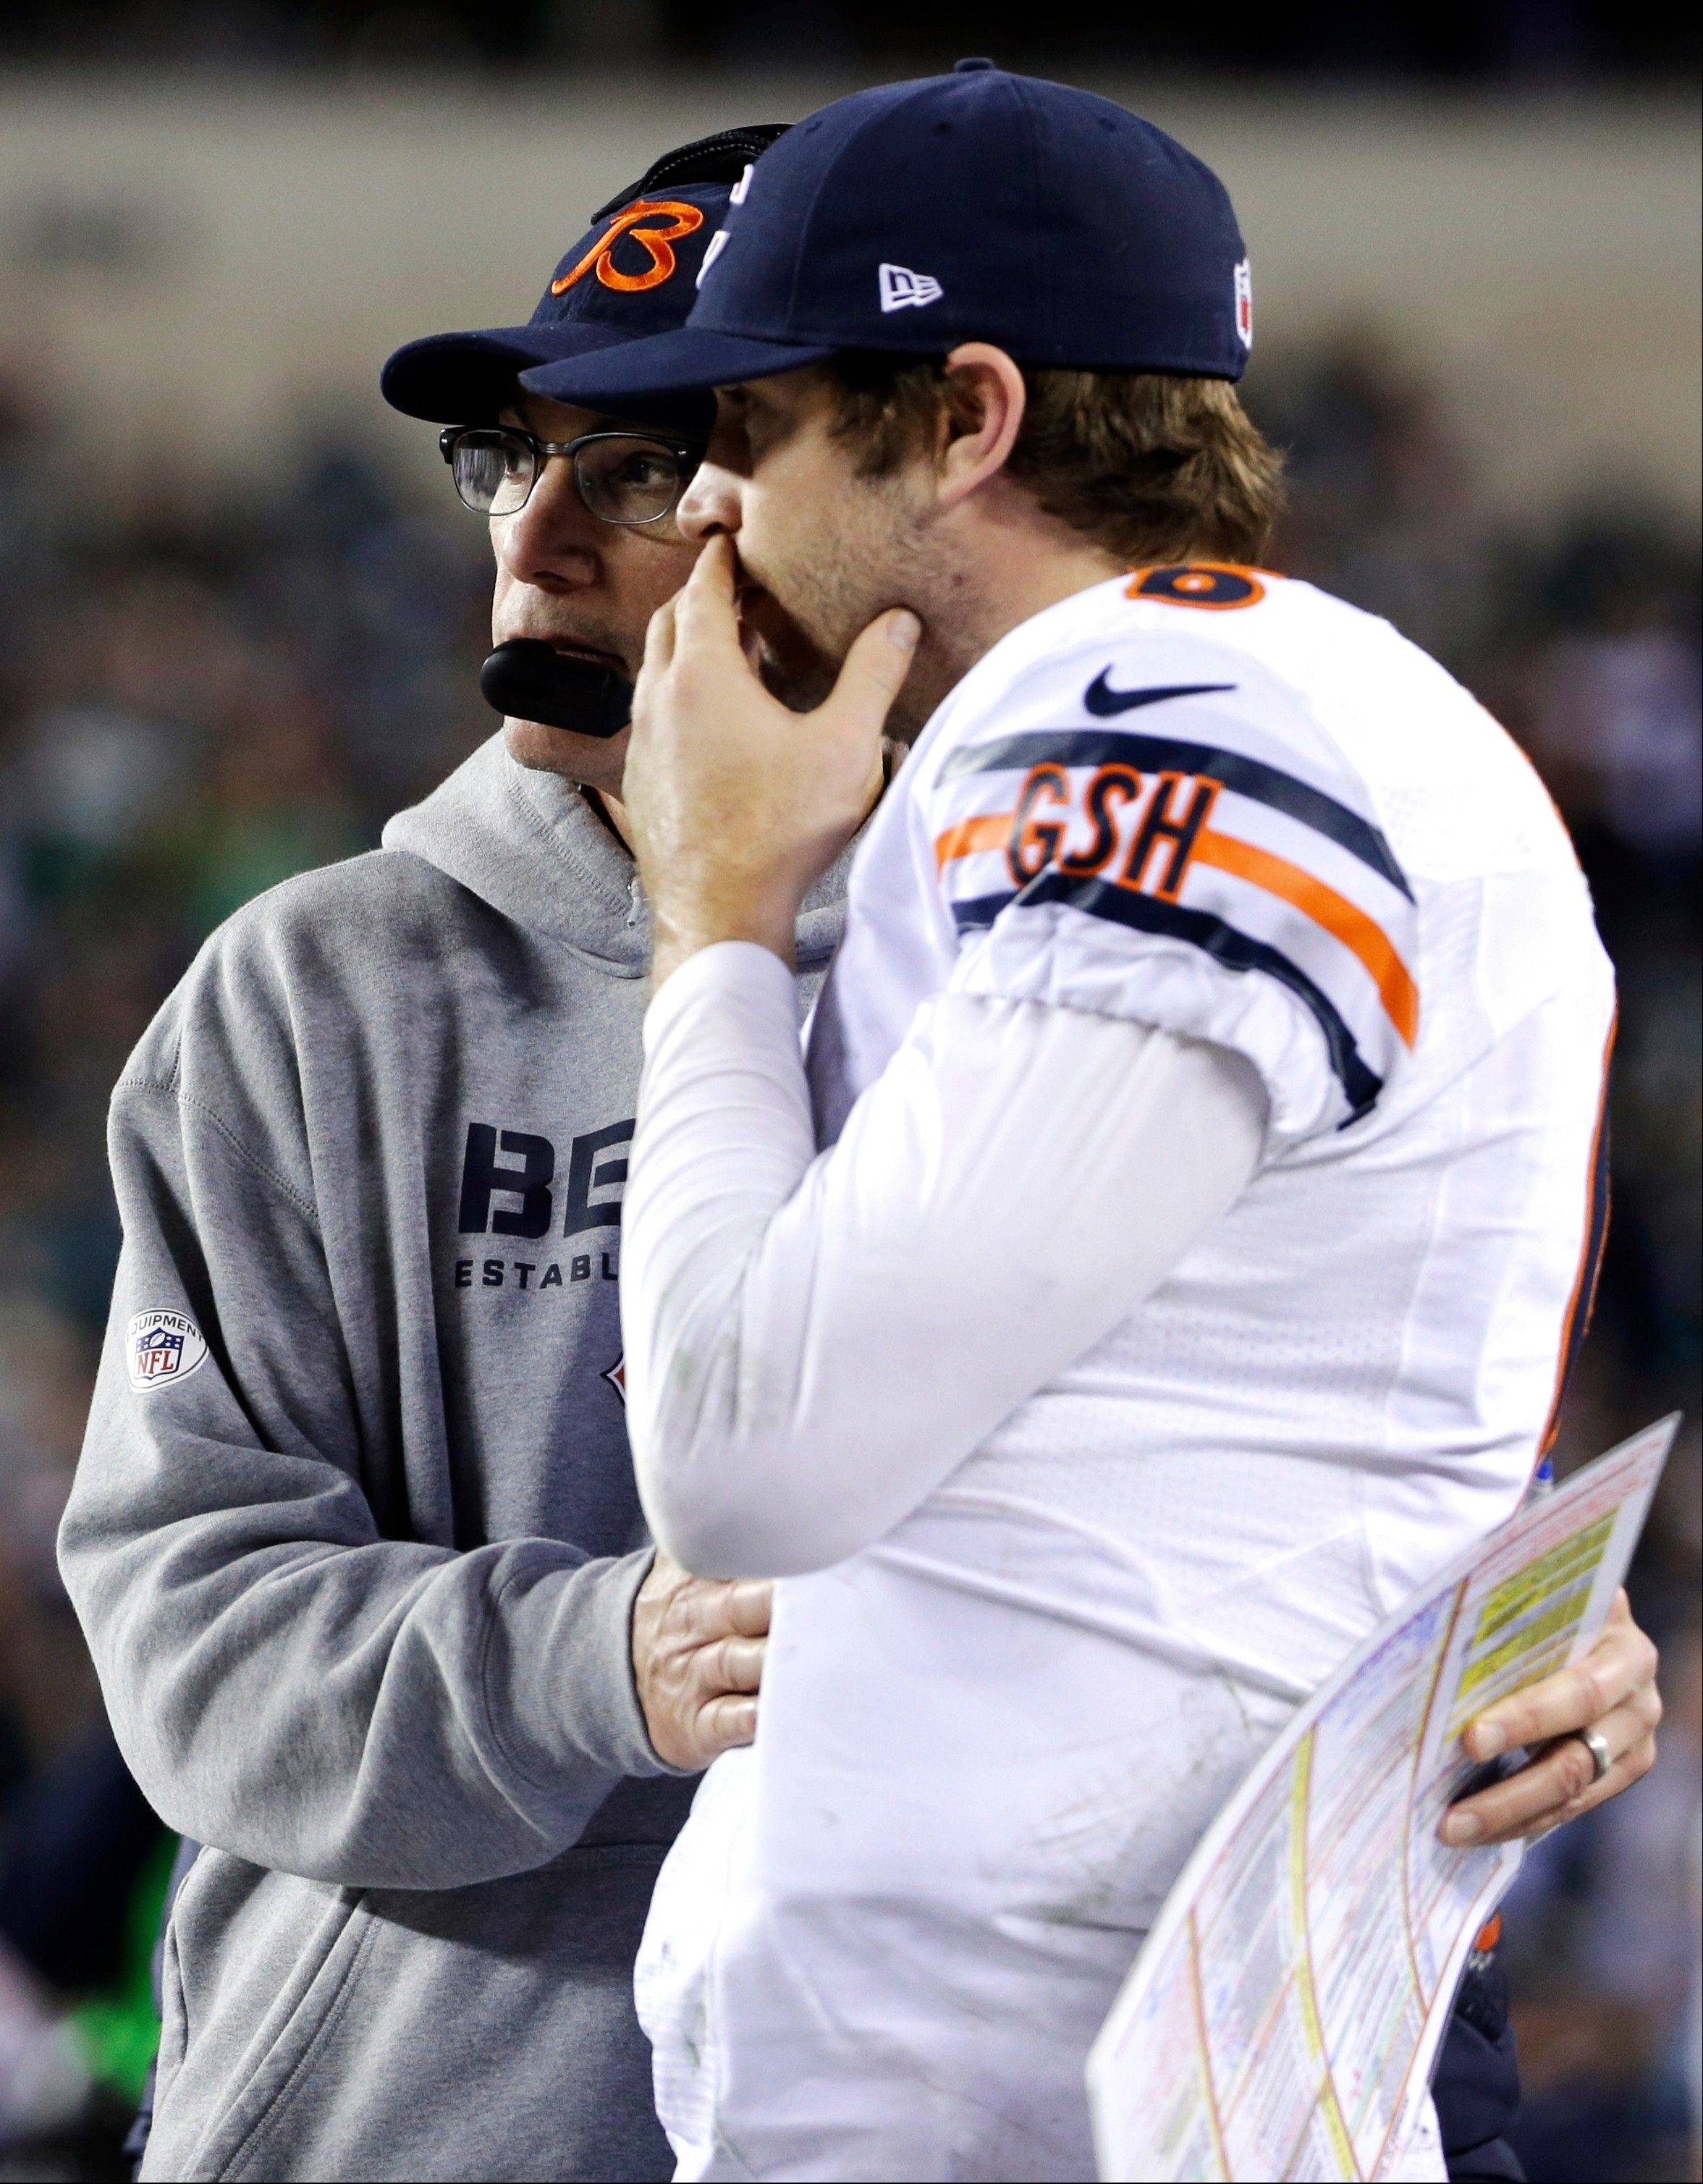 Bears' Trestman has ability to make the right call